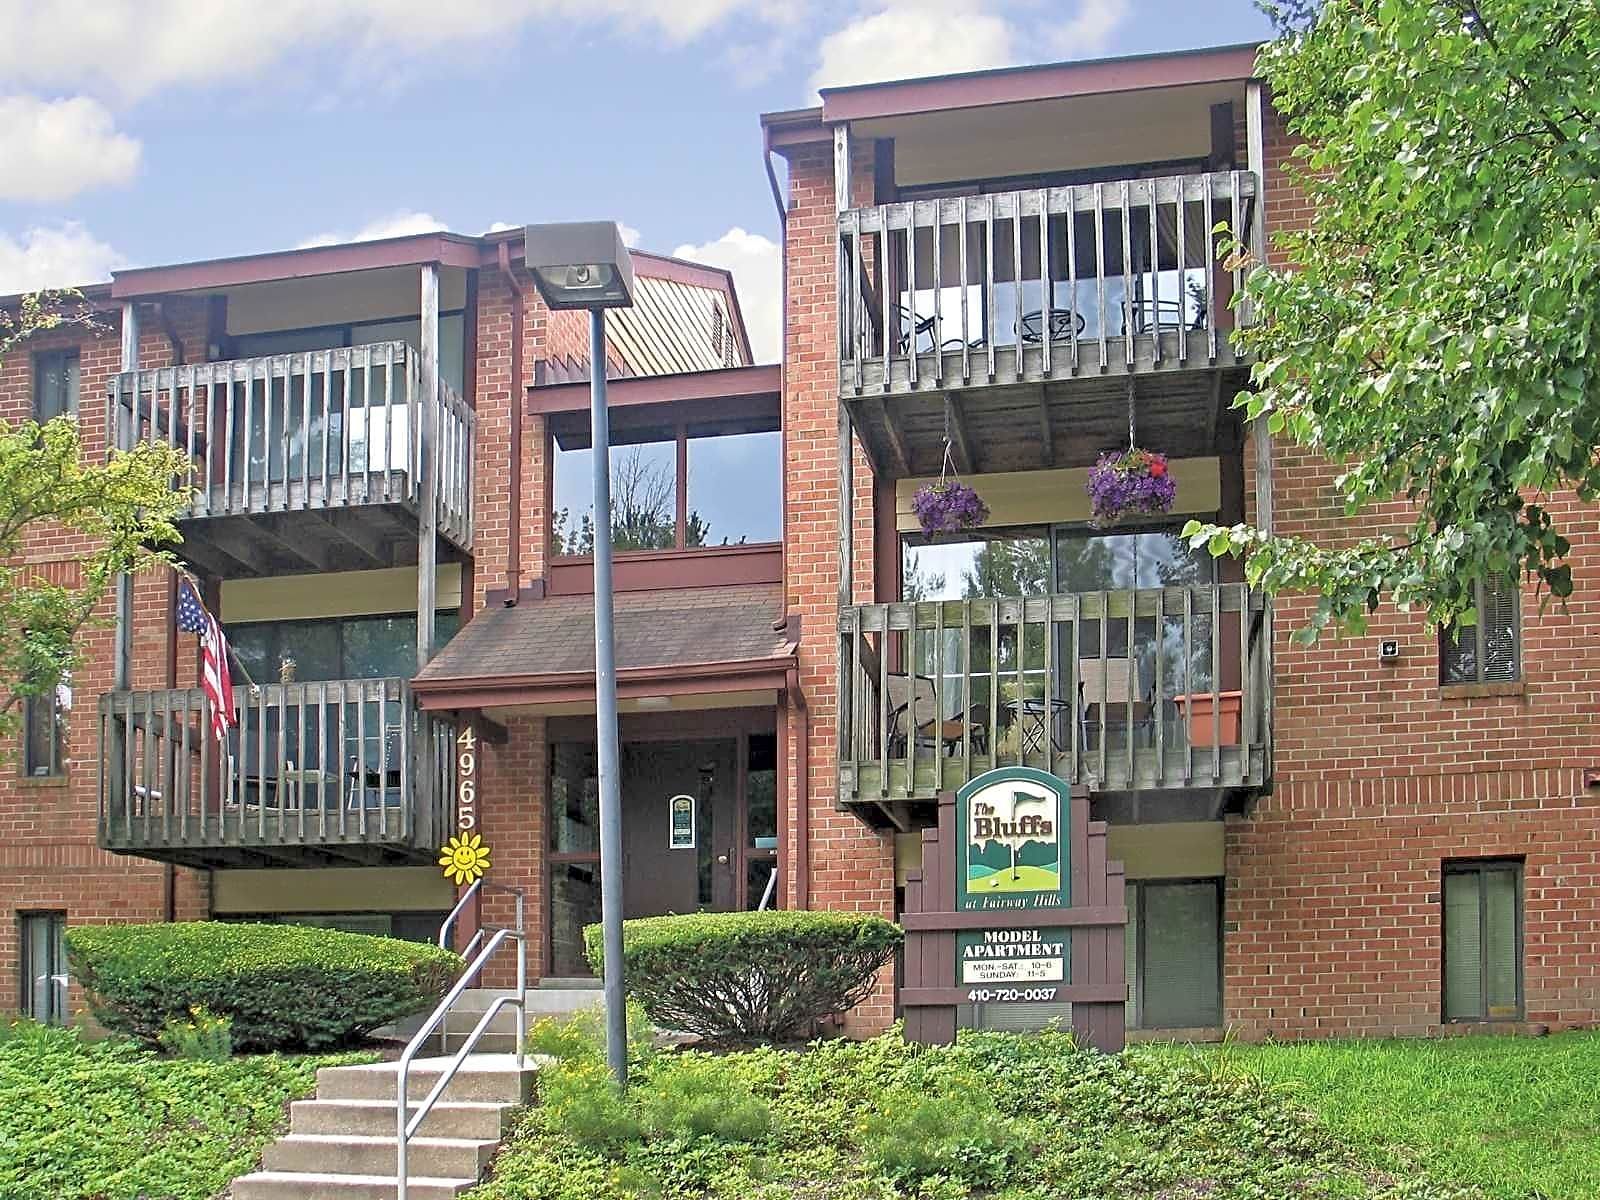 2 bedroom houses for rent in columbia md 52 rental homes - 2 bedroom apartments in columbia md ...